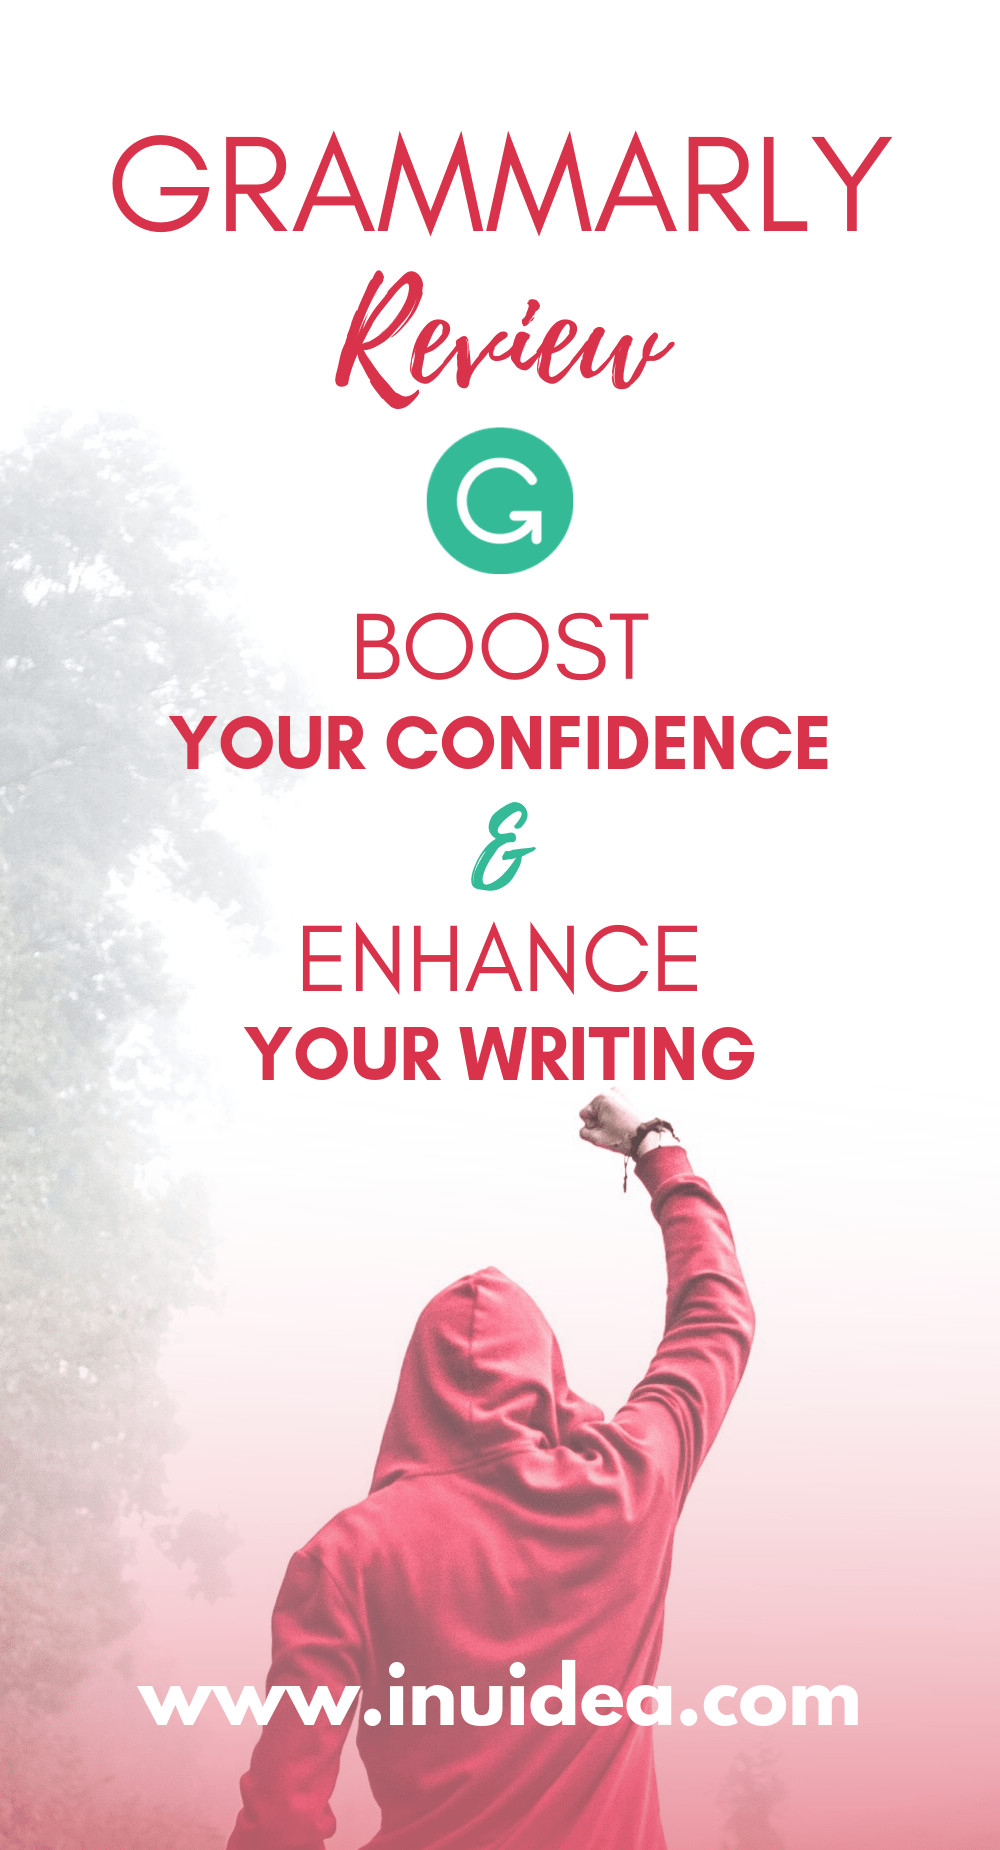 Proofreading Software Grammarly University Coupons